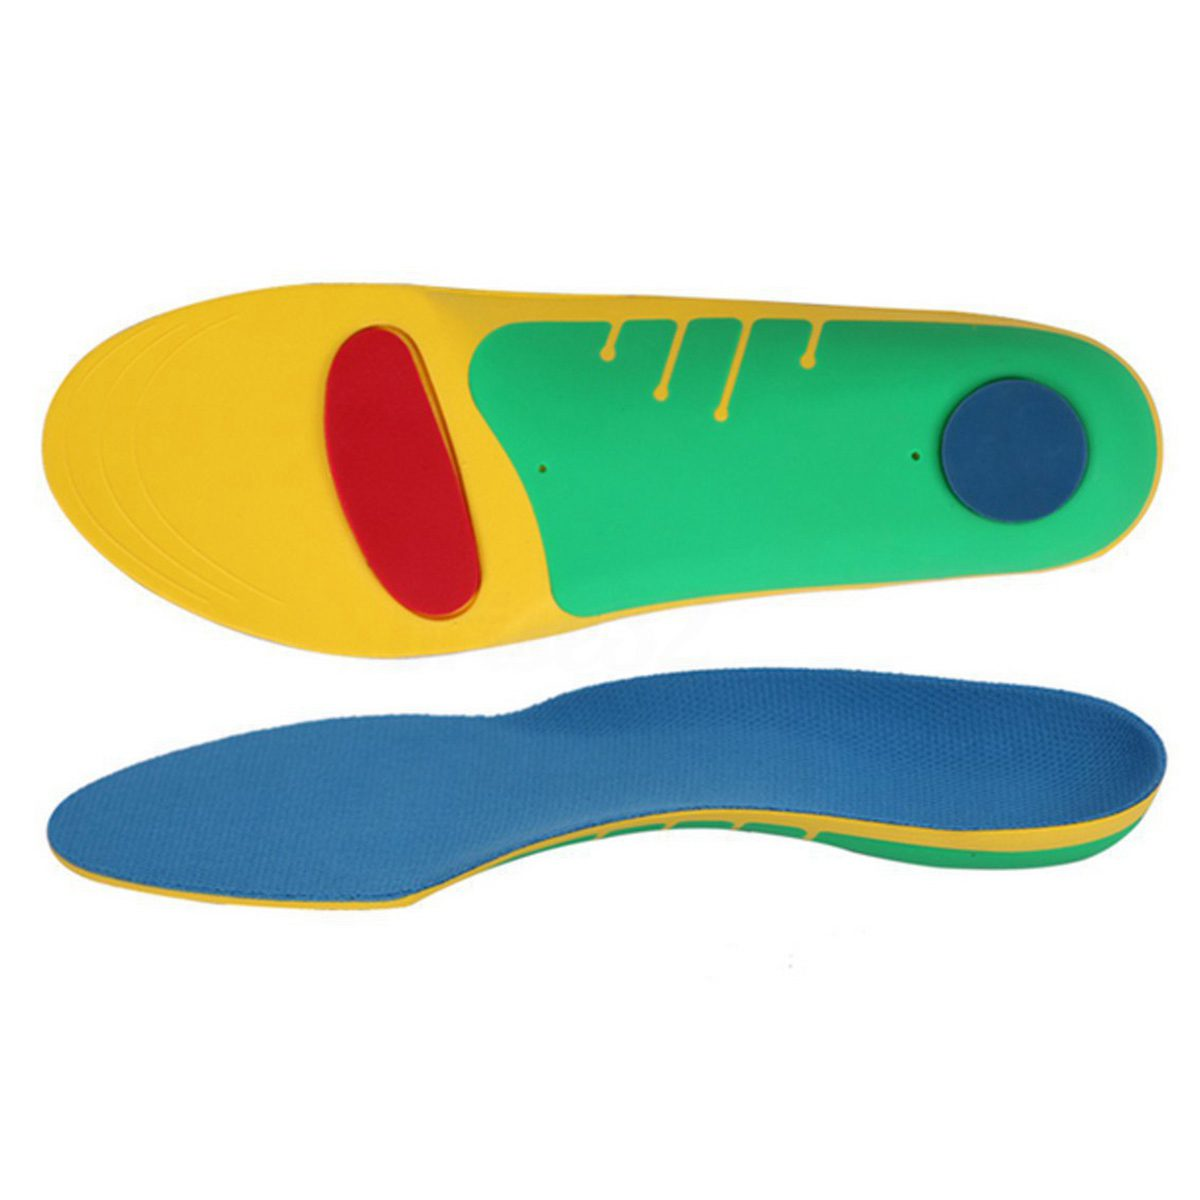 Pair Orthotic Shoes Insoles Insert High Arch Support Pad Accessory Women Men, L kotlikoff sport running insoles shoes insert orthotic arch support shoe foot pad cushion for shoes men women shoes accessories